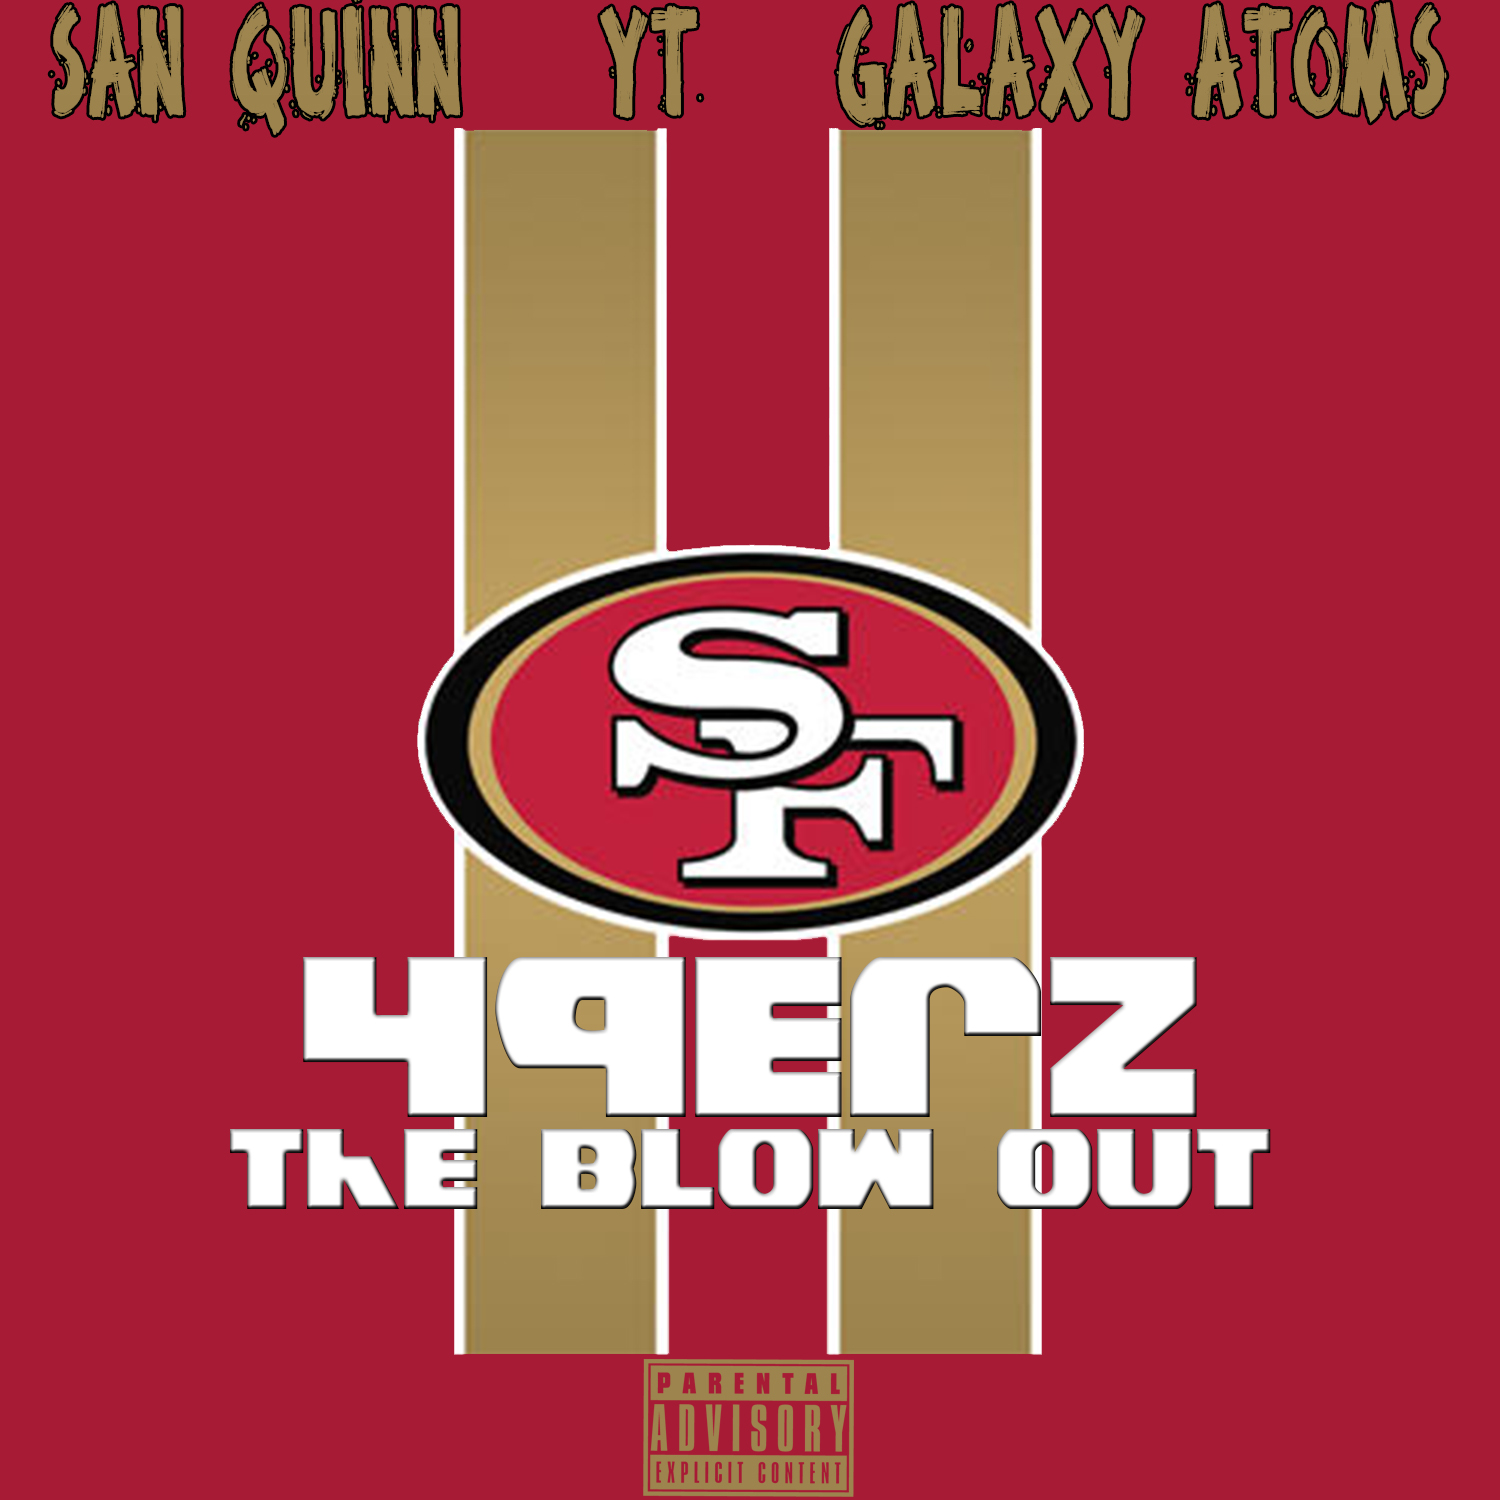 San Quinn, YT, Galaxy Atoms - 49erz The Blow Out [THIZZLER.com EXCLUSIVE]